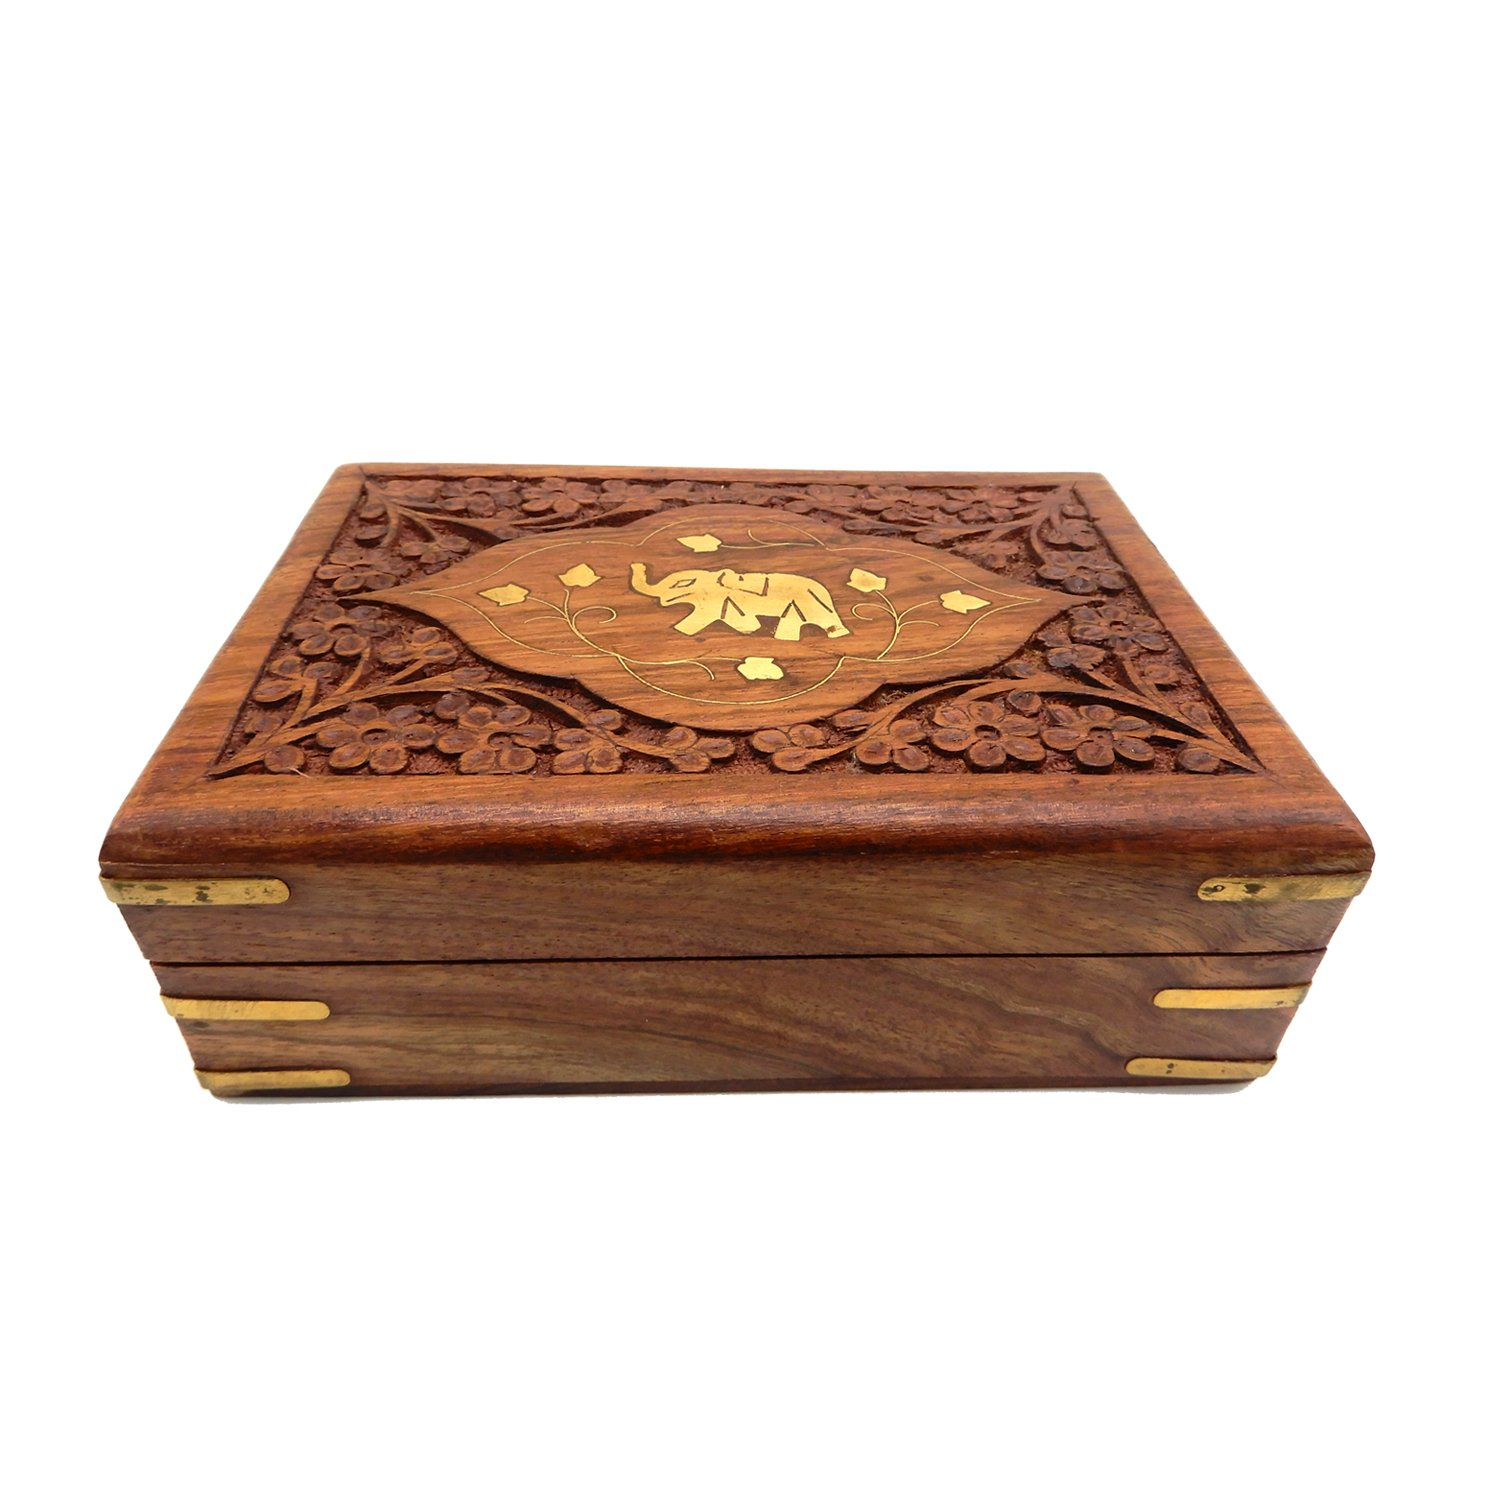 IndiaBigShop Hand Carved Wooden Keepsake Jewelry Trinket Box Storage Organizer with Single Elephant and Carving 8 X 5 Inch